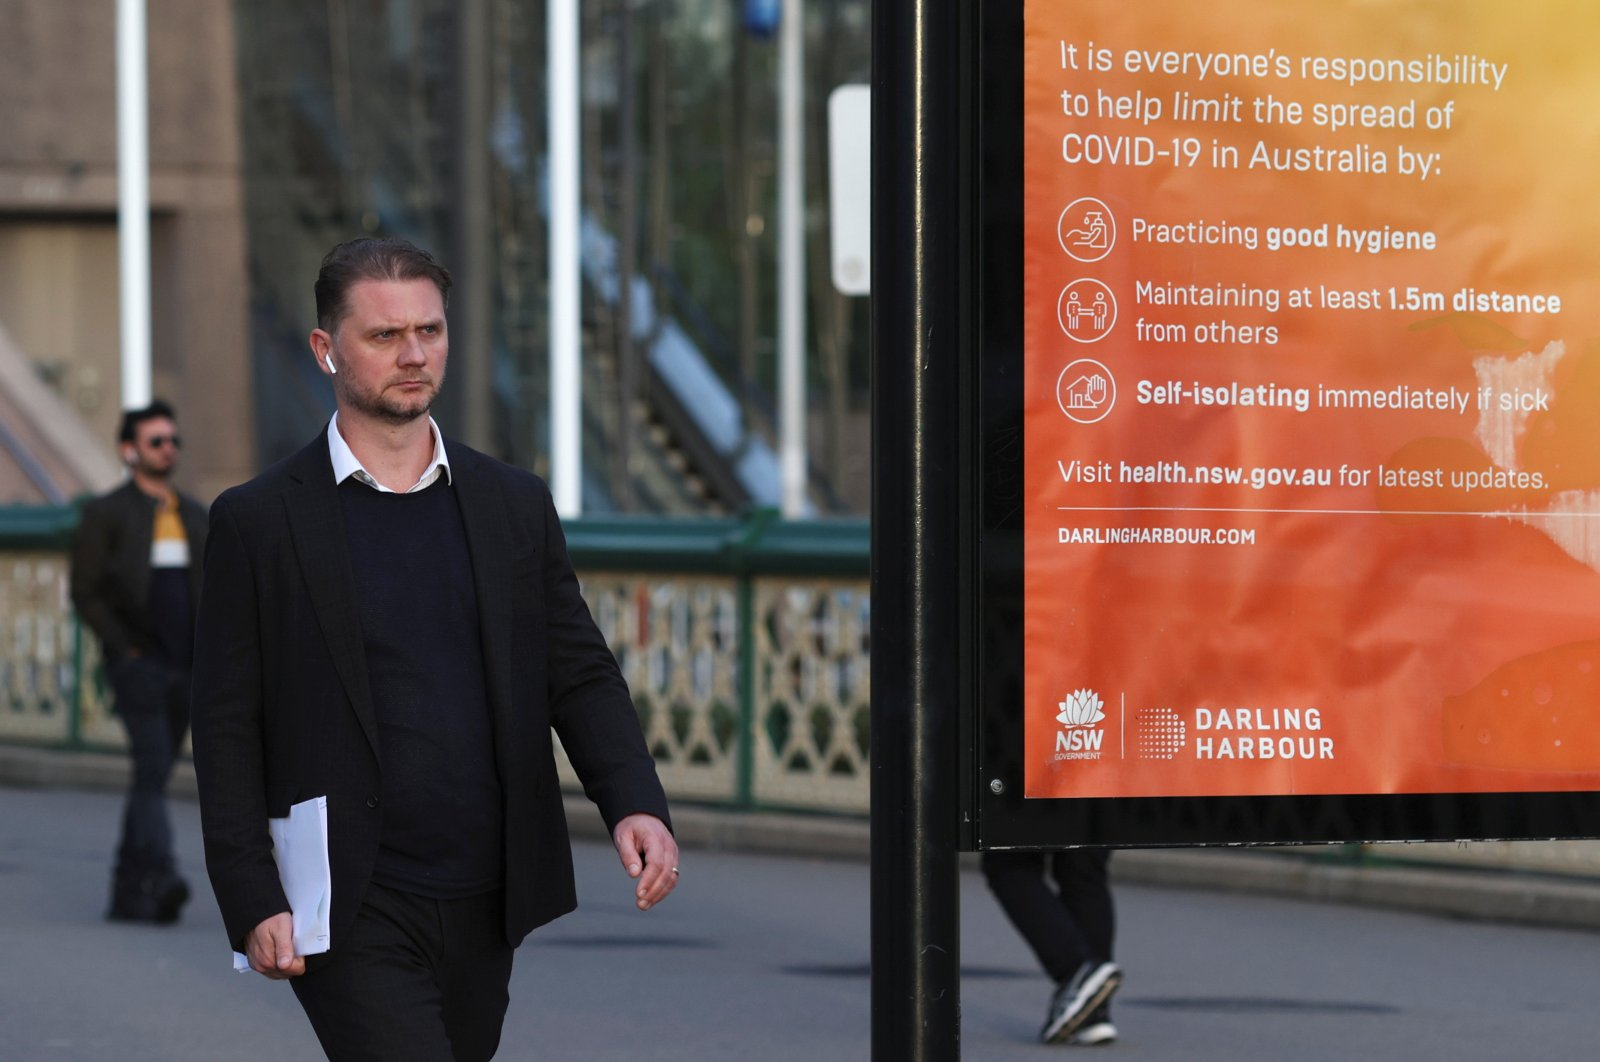 A man walks near an information board following the easing of restrictions implemented to curb the spread of the coronavirus, at Darling Harbour near the city center in Sydney, Australia, May 18, 2020. (Reuters Photo)